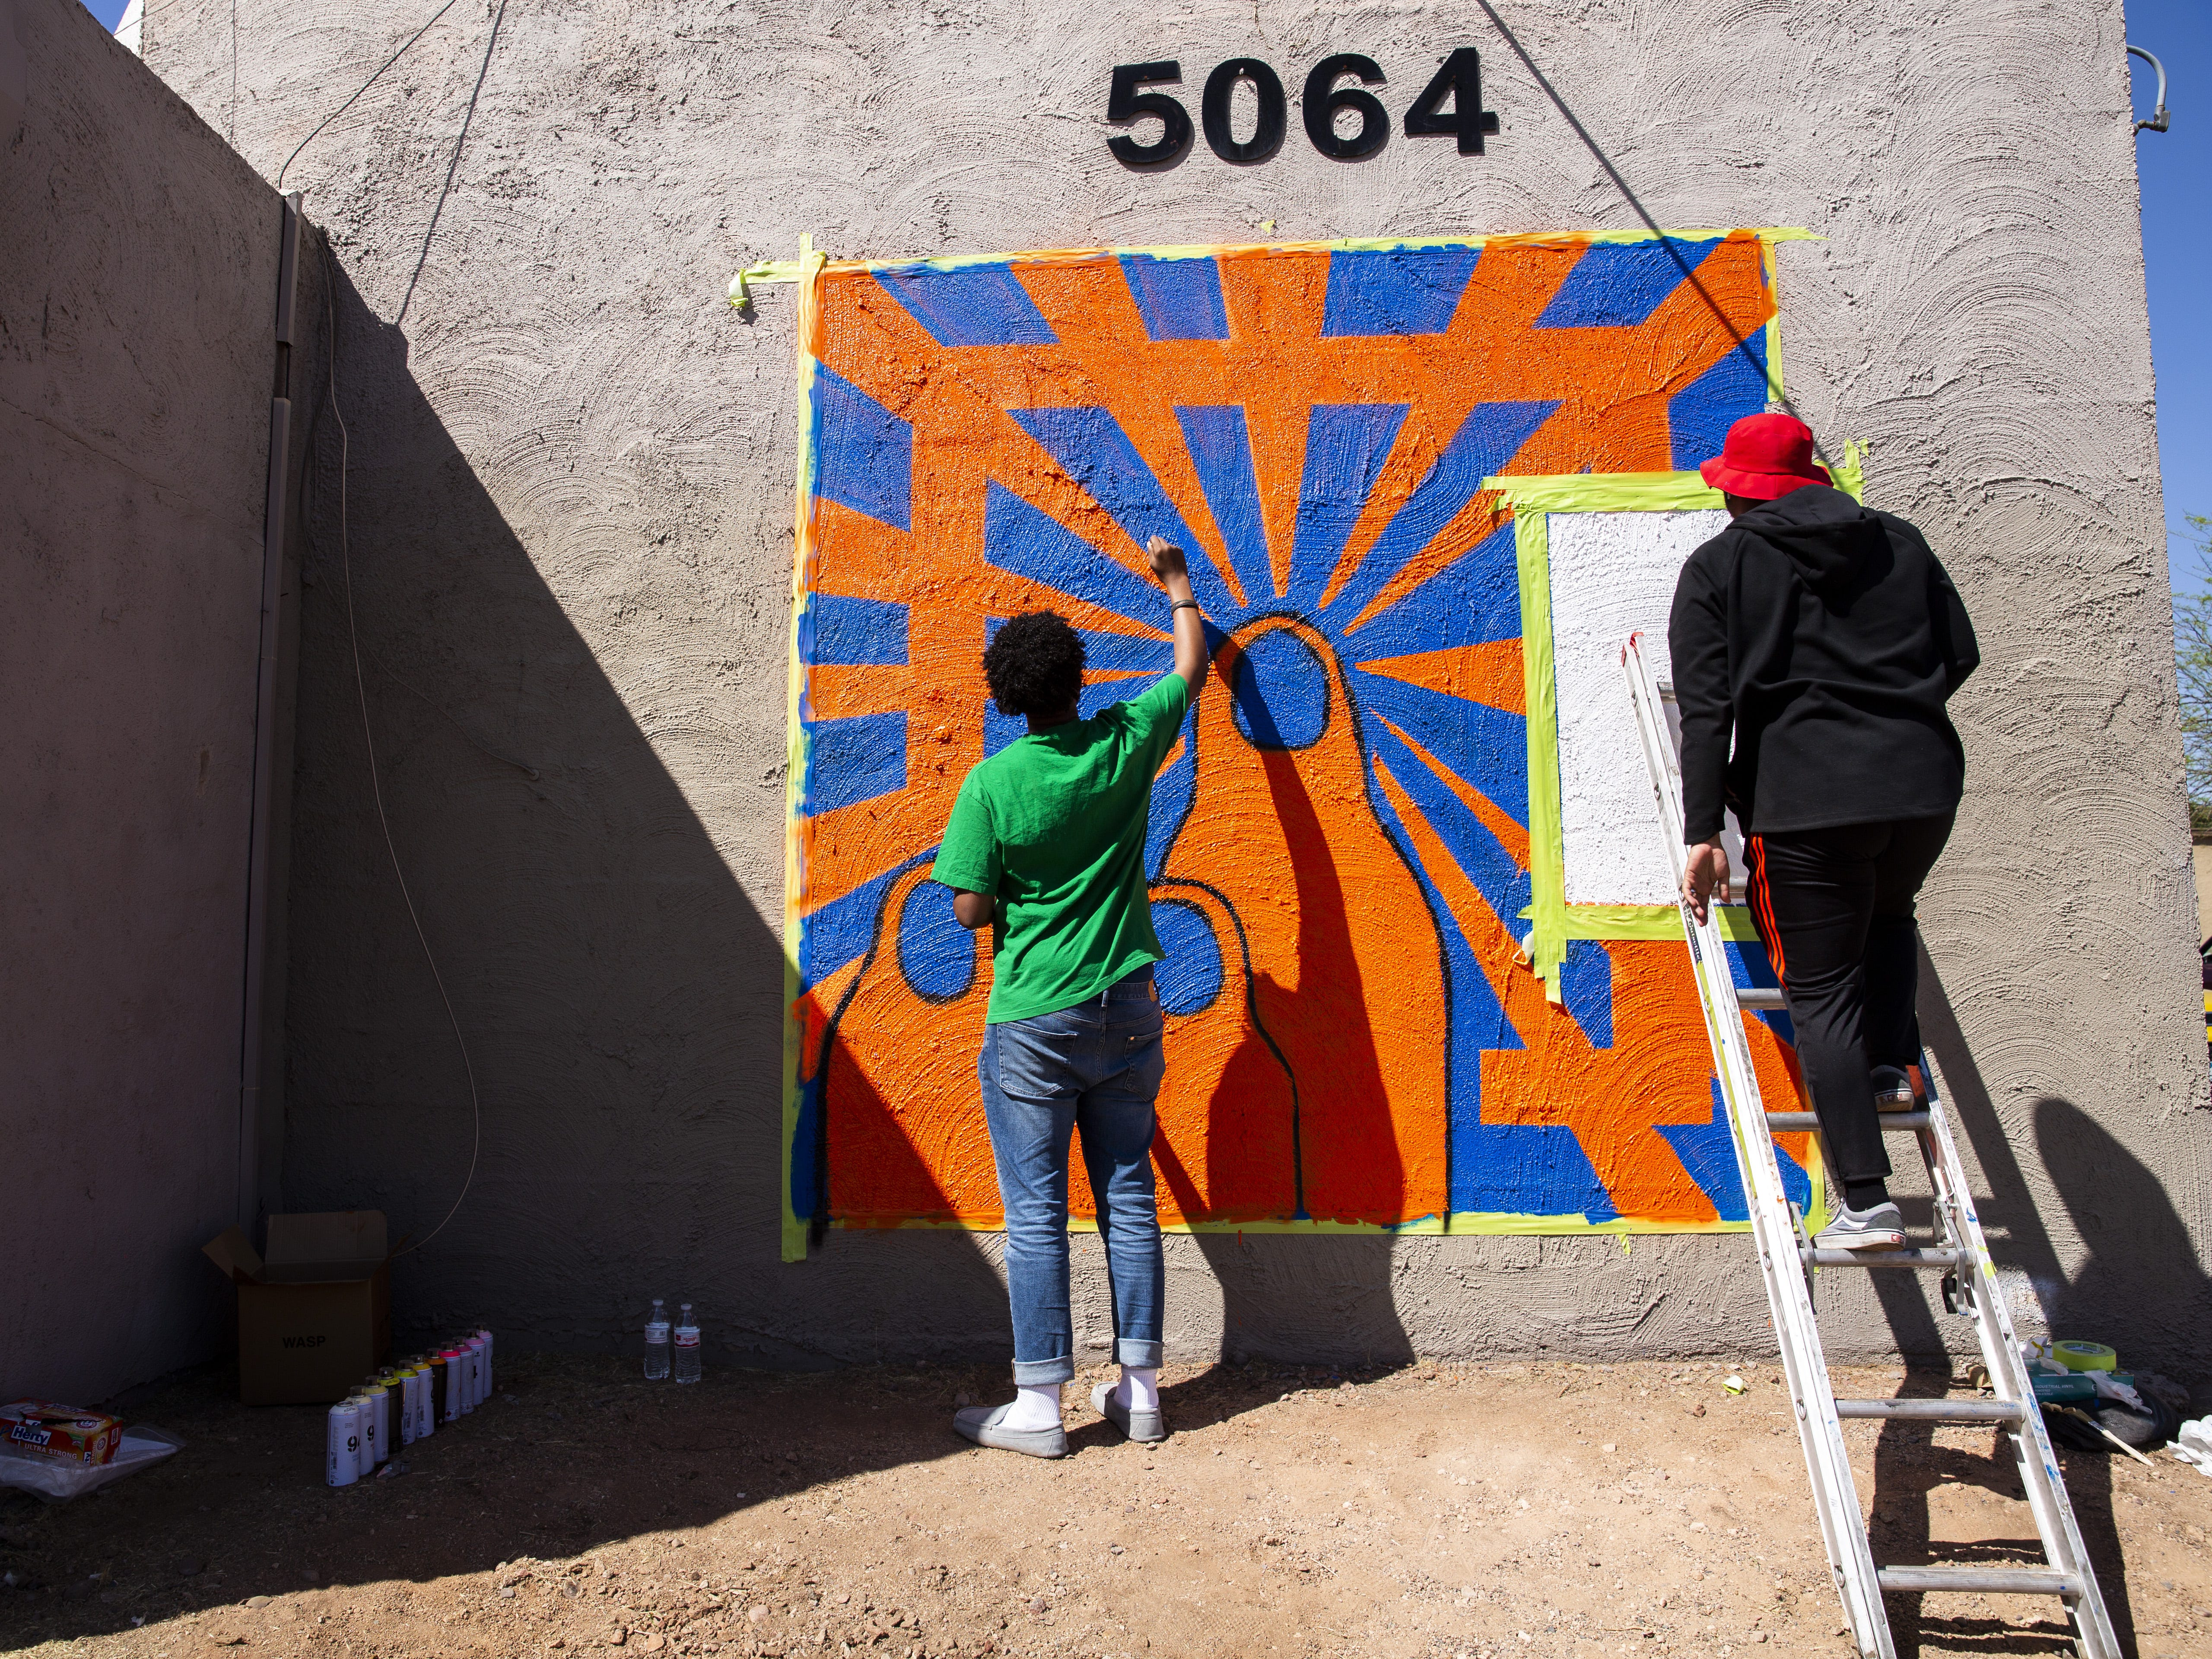 From left, San Diego artists Yaqub Hussein and Haadi Mohamed work on a mural in Phoenix, Ariz. on March 31, 2019.